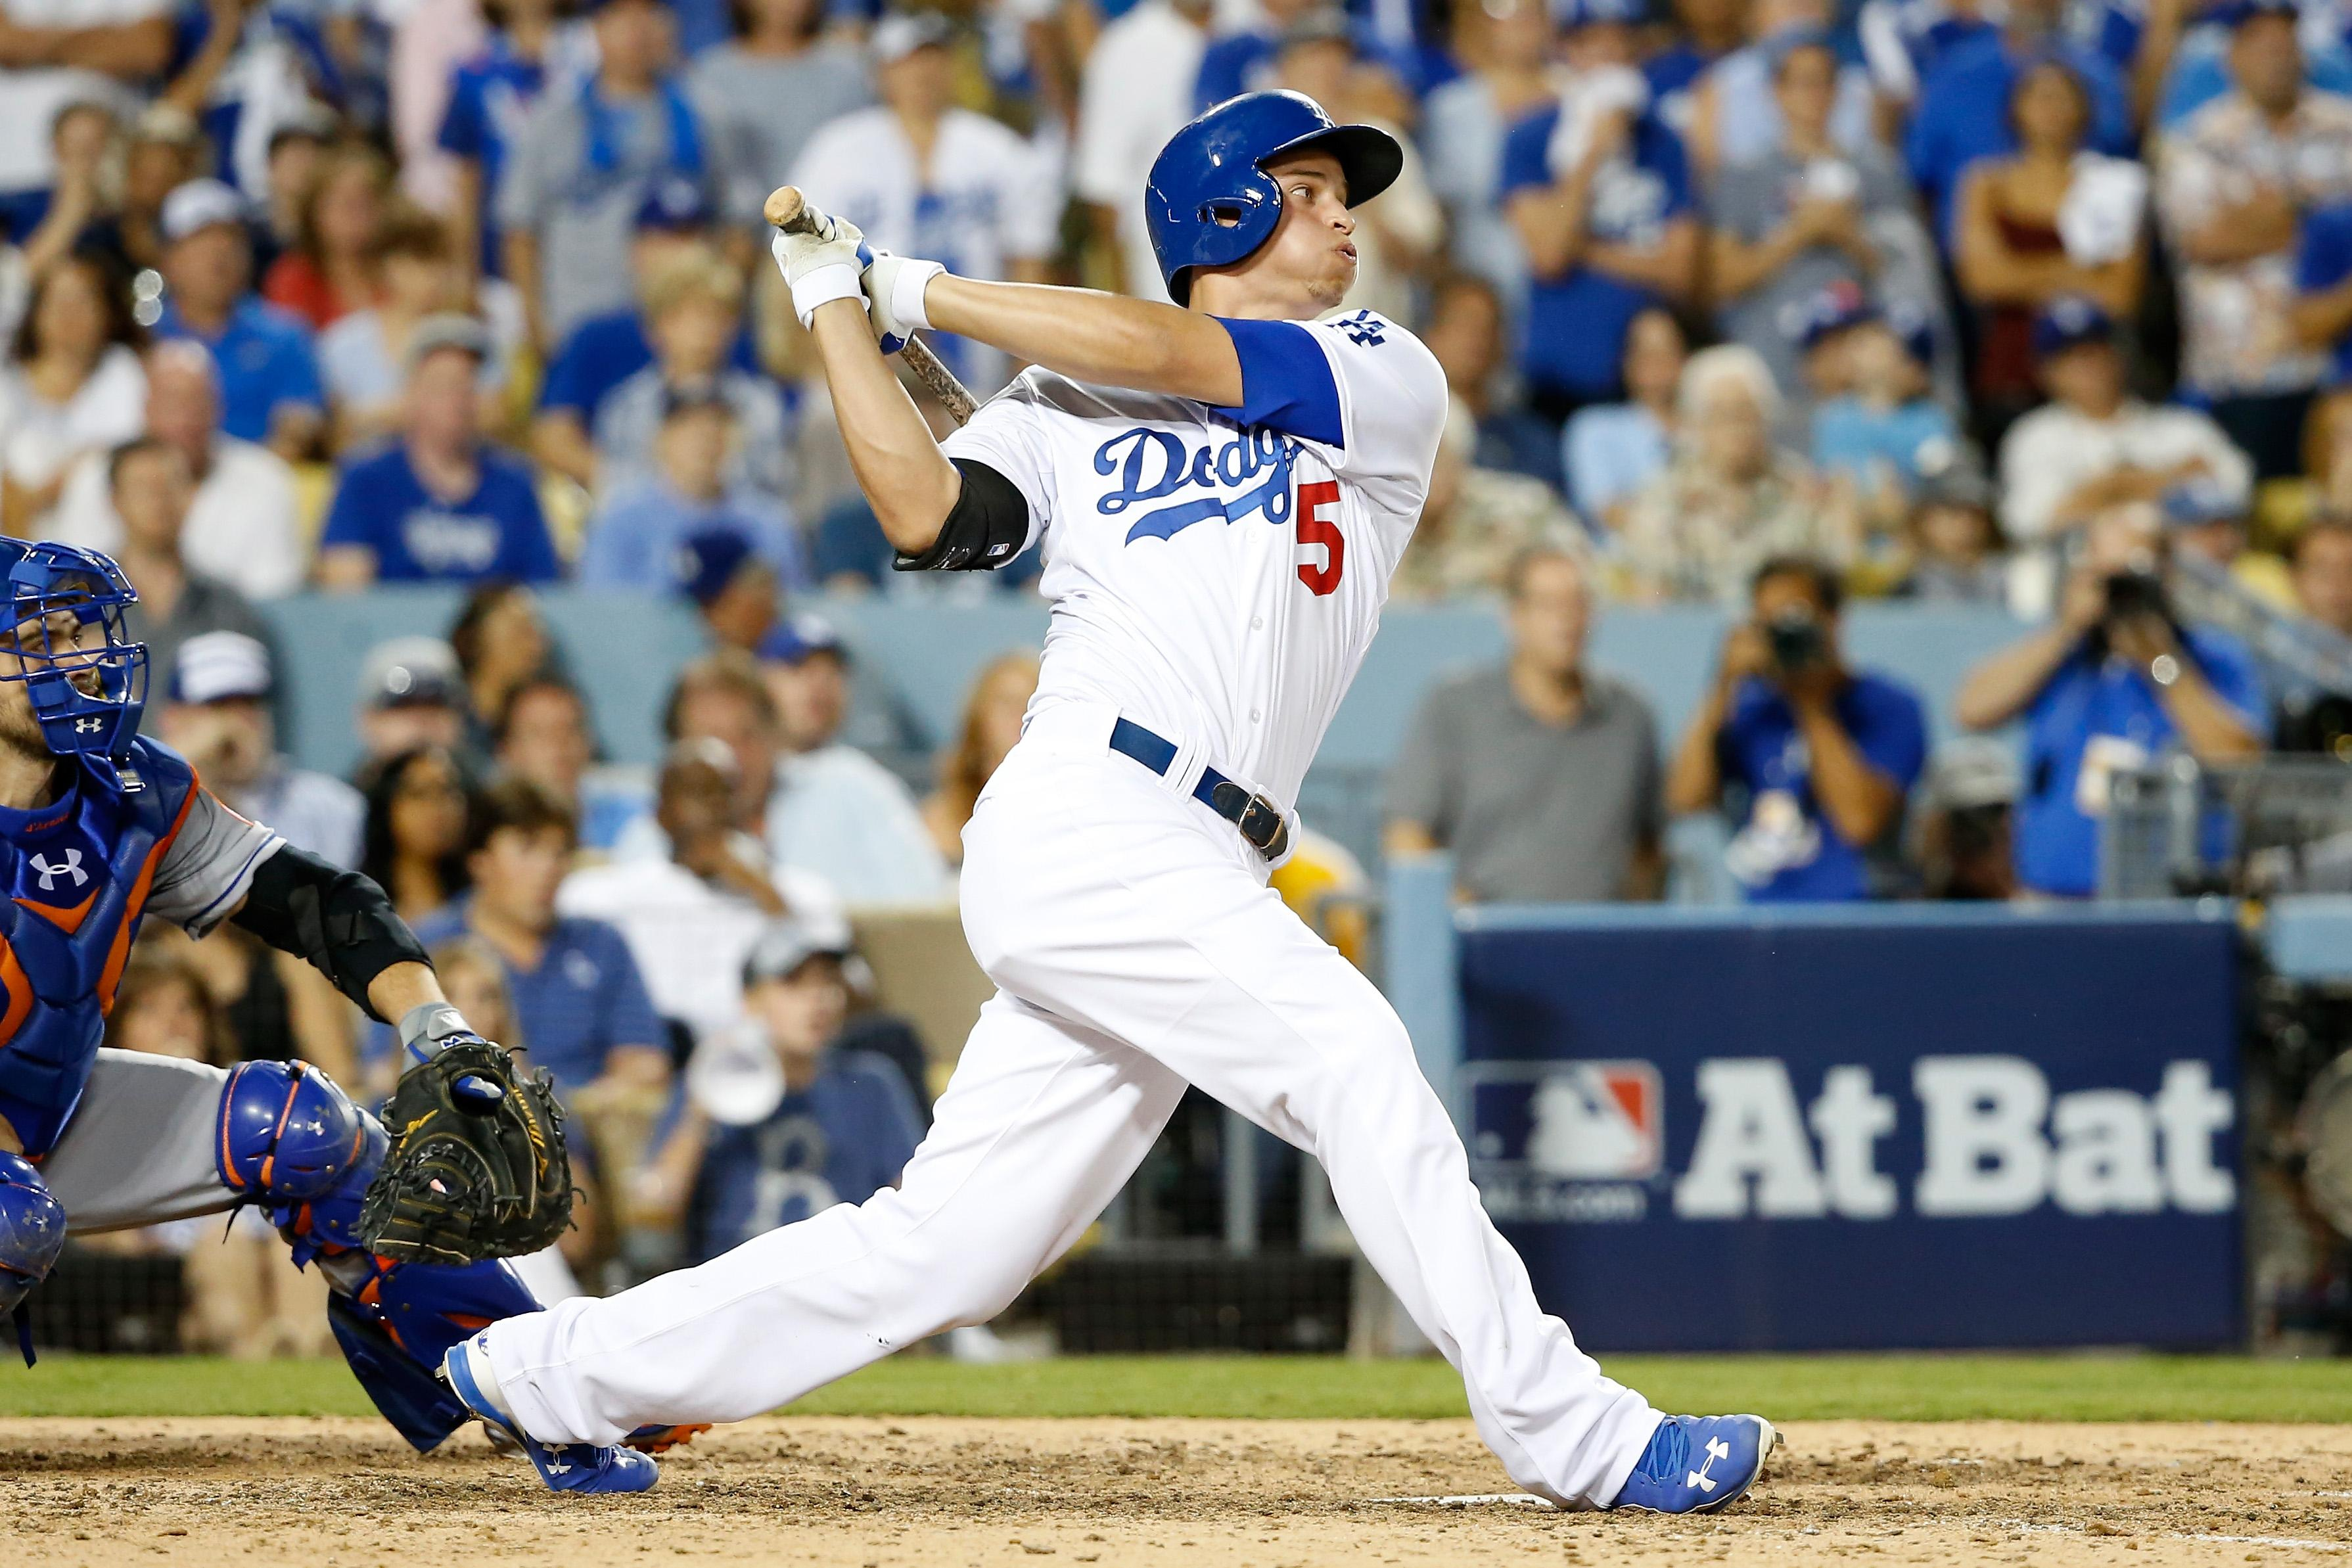 Corey Seager